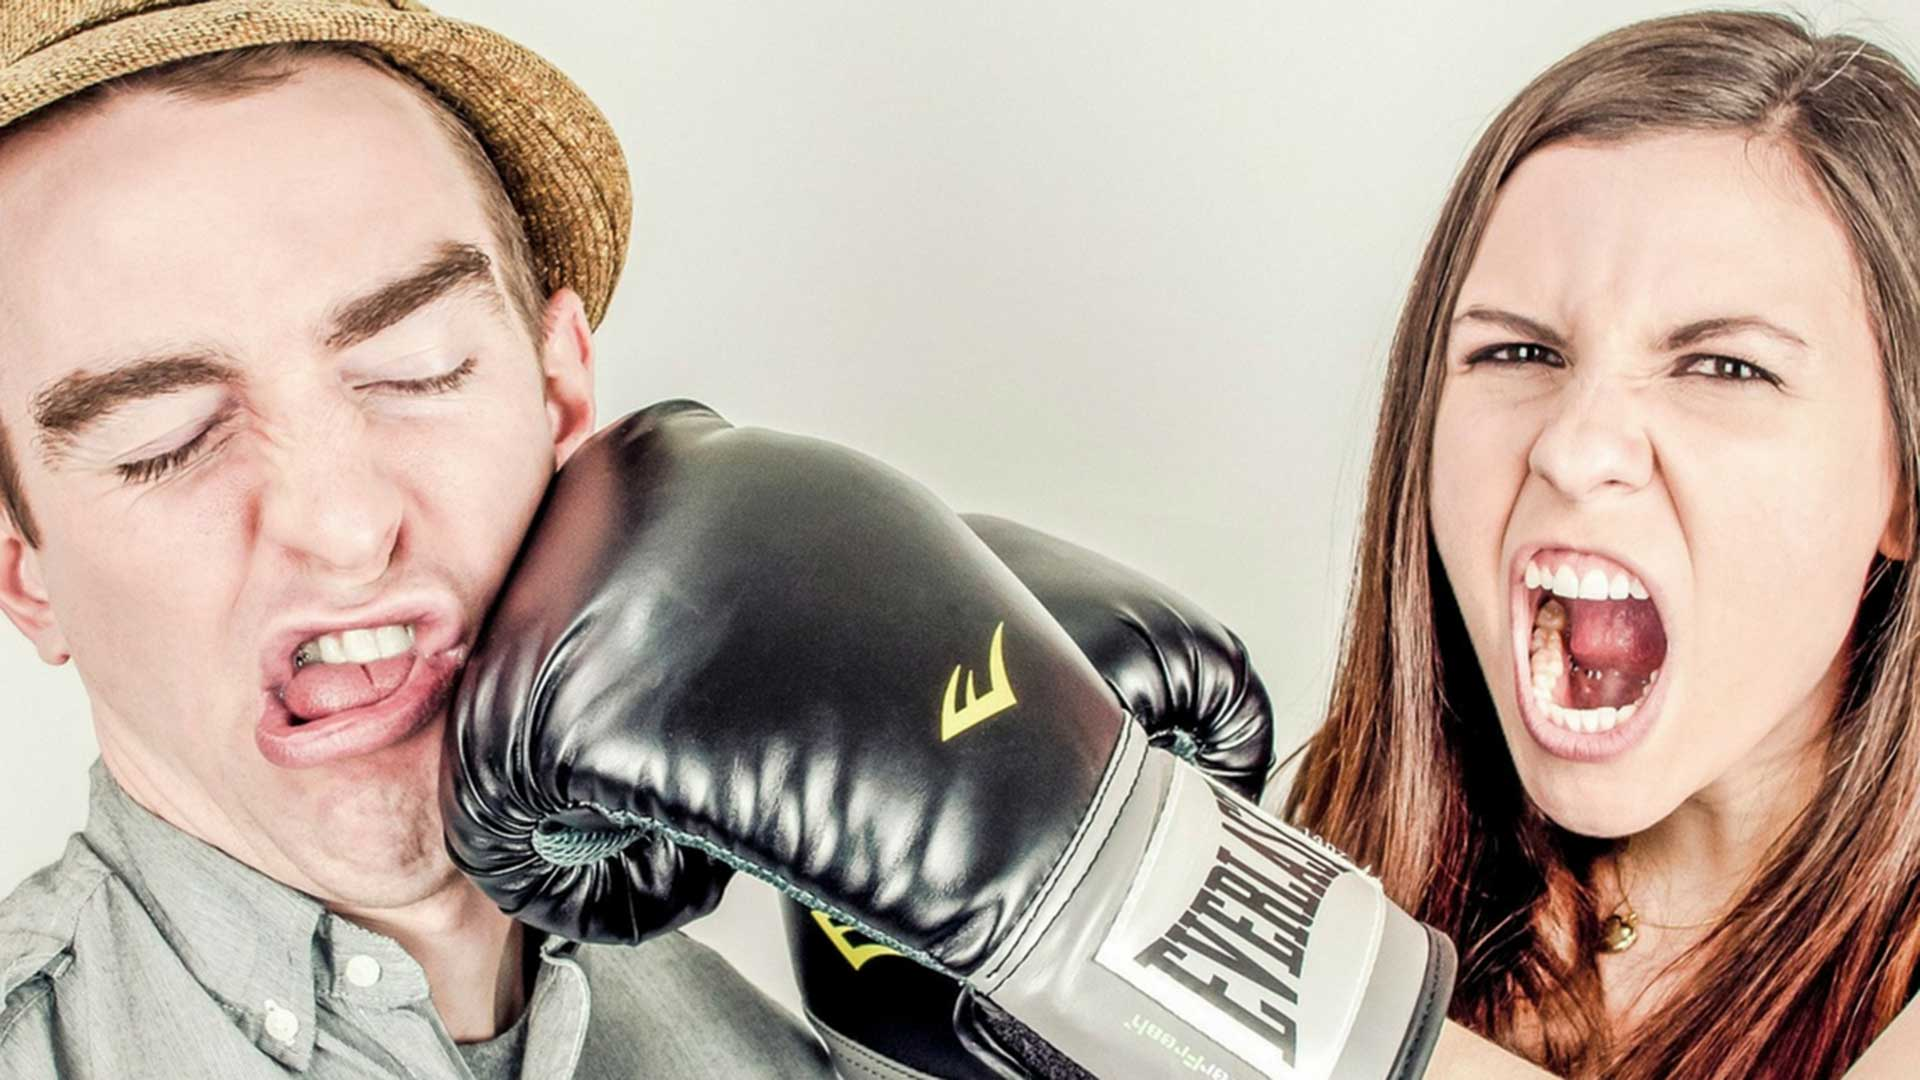 Woman and man with boxing gloves